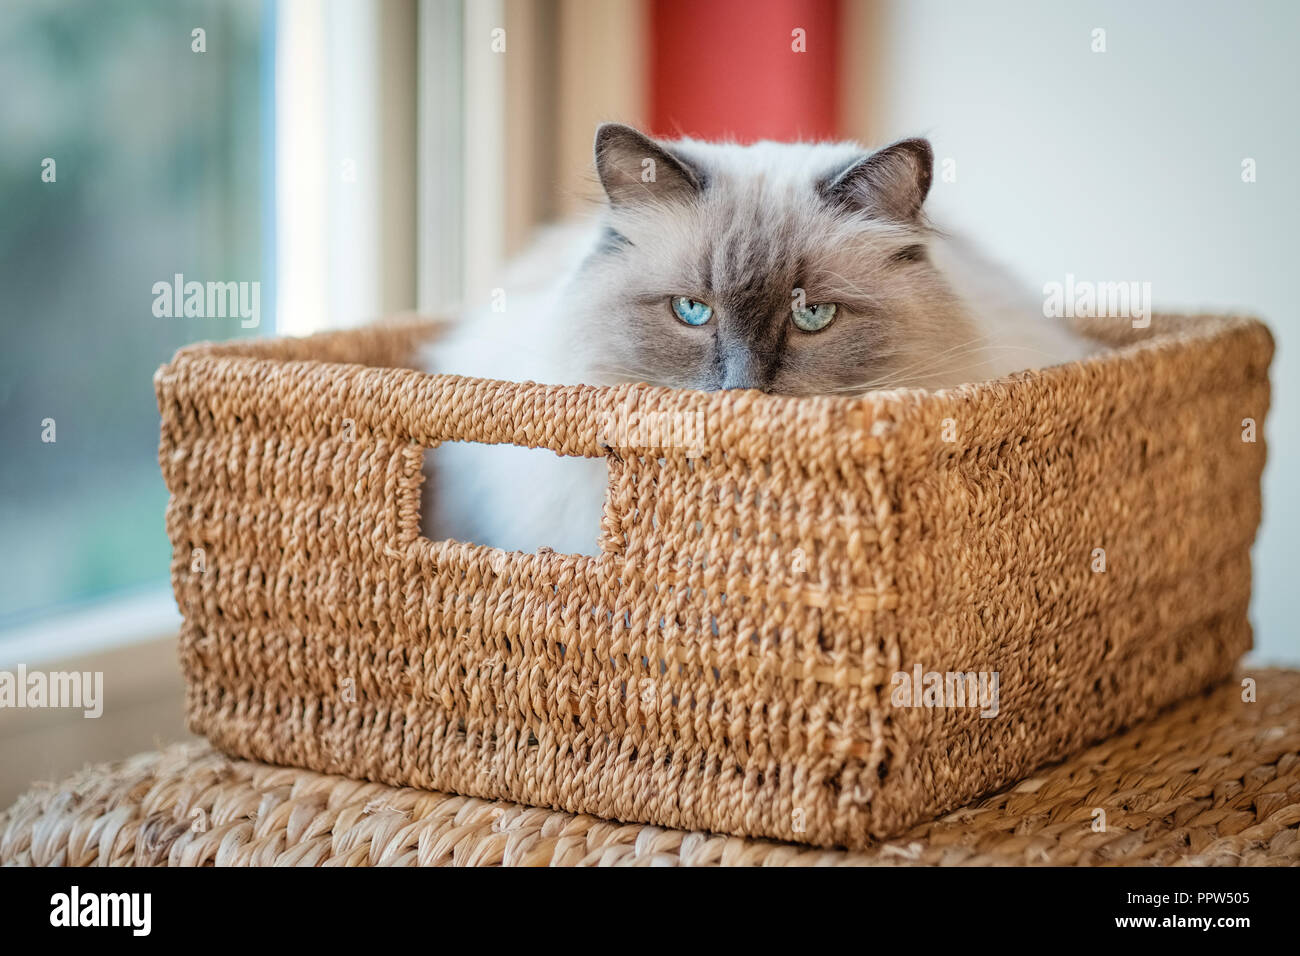 Nice Ragdoll cat, lying in a basket. Developed by American breeder Ann Baker, it is best known for its docile temperament and affectionat nature - Stock Image